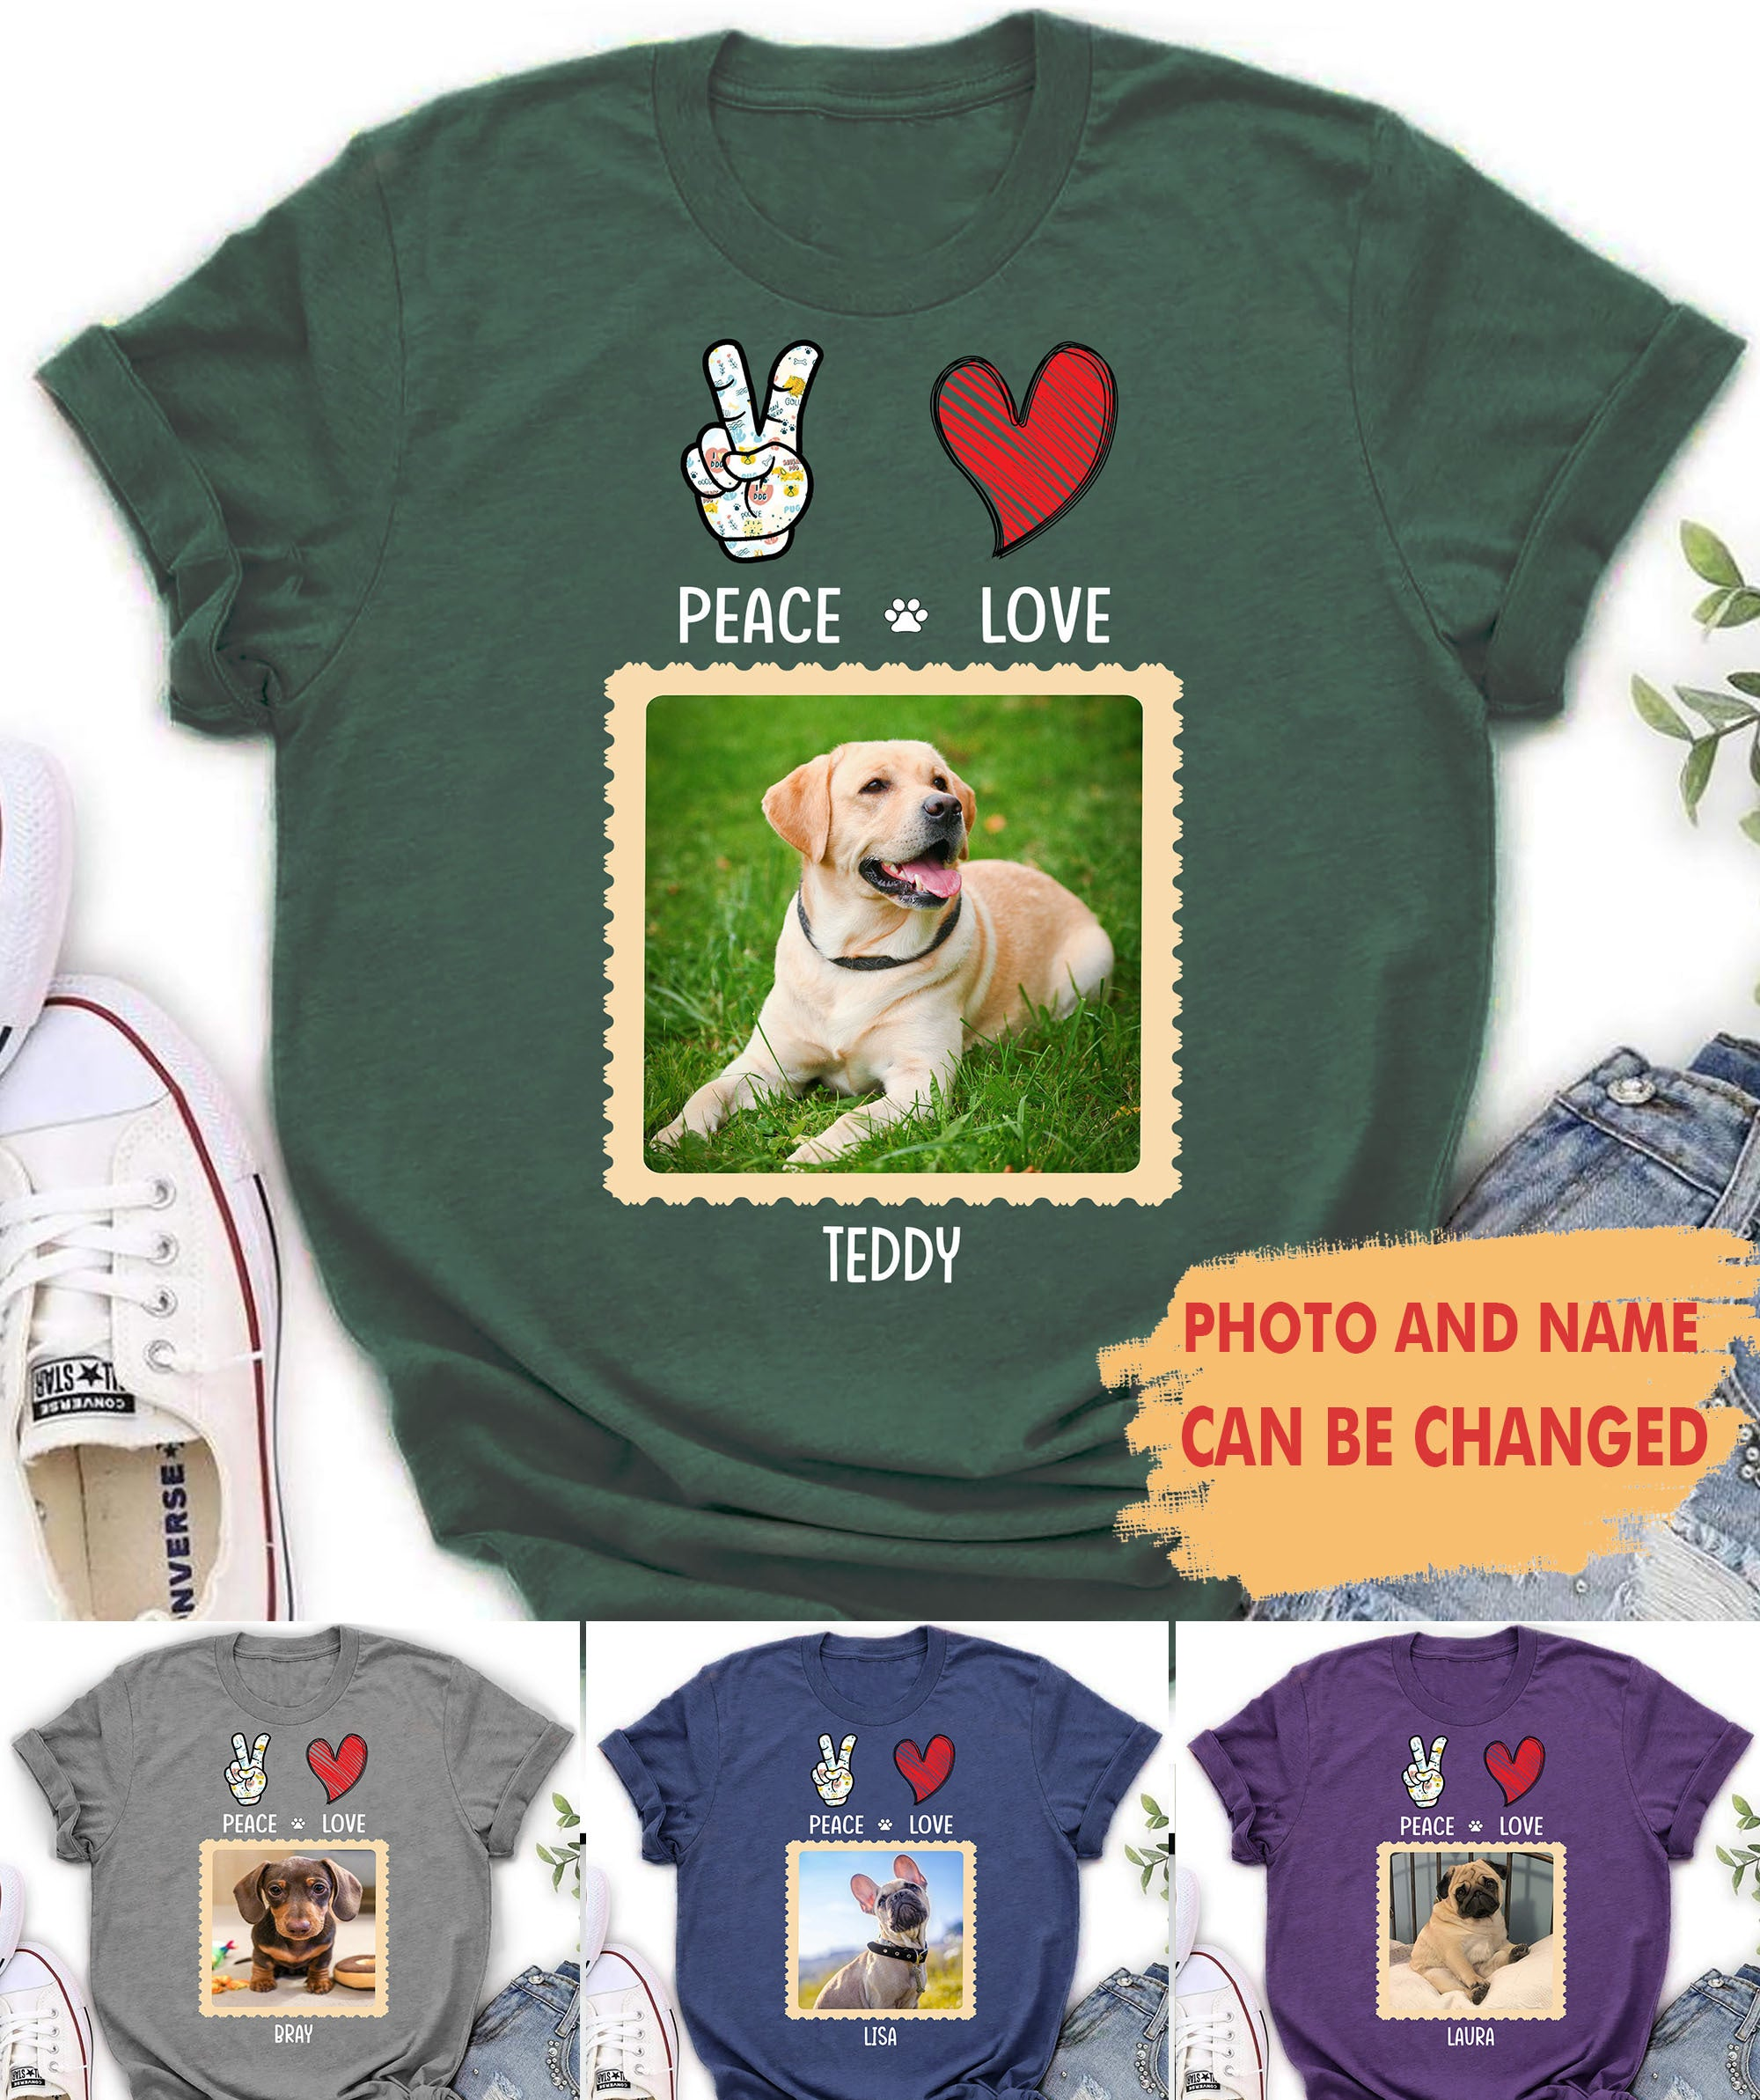 Peace, Love, Dog - Personalized Custom Photo T-shirt